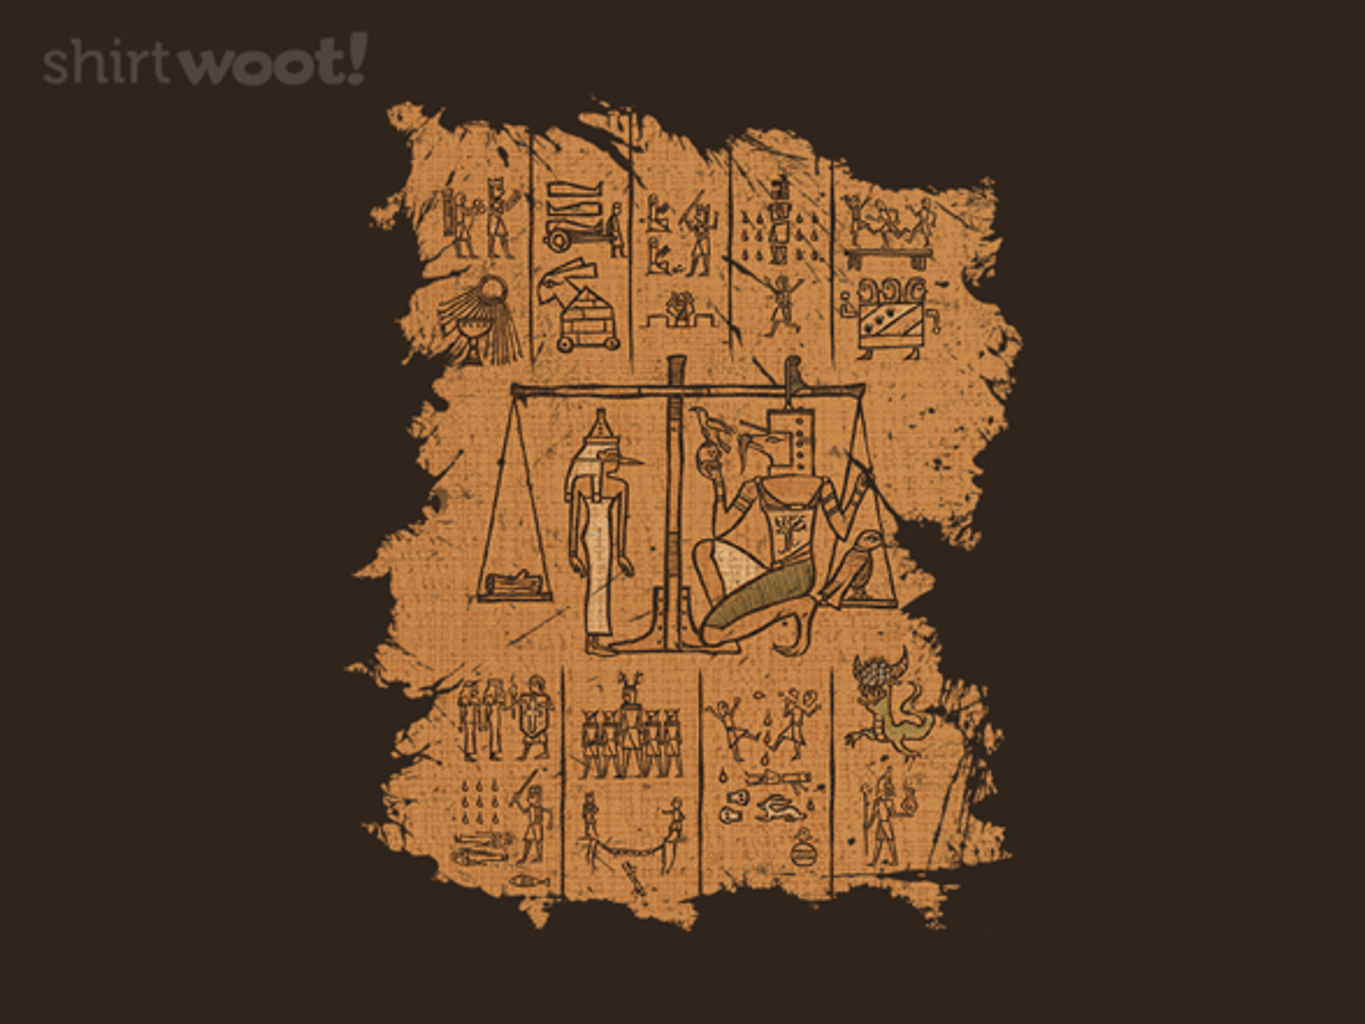 Woot!: The Pharaoh's Judgement - $15.00 + Free shipping